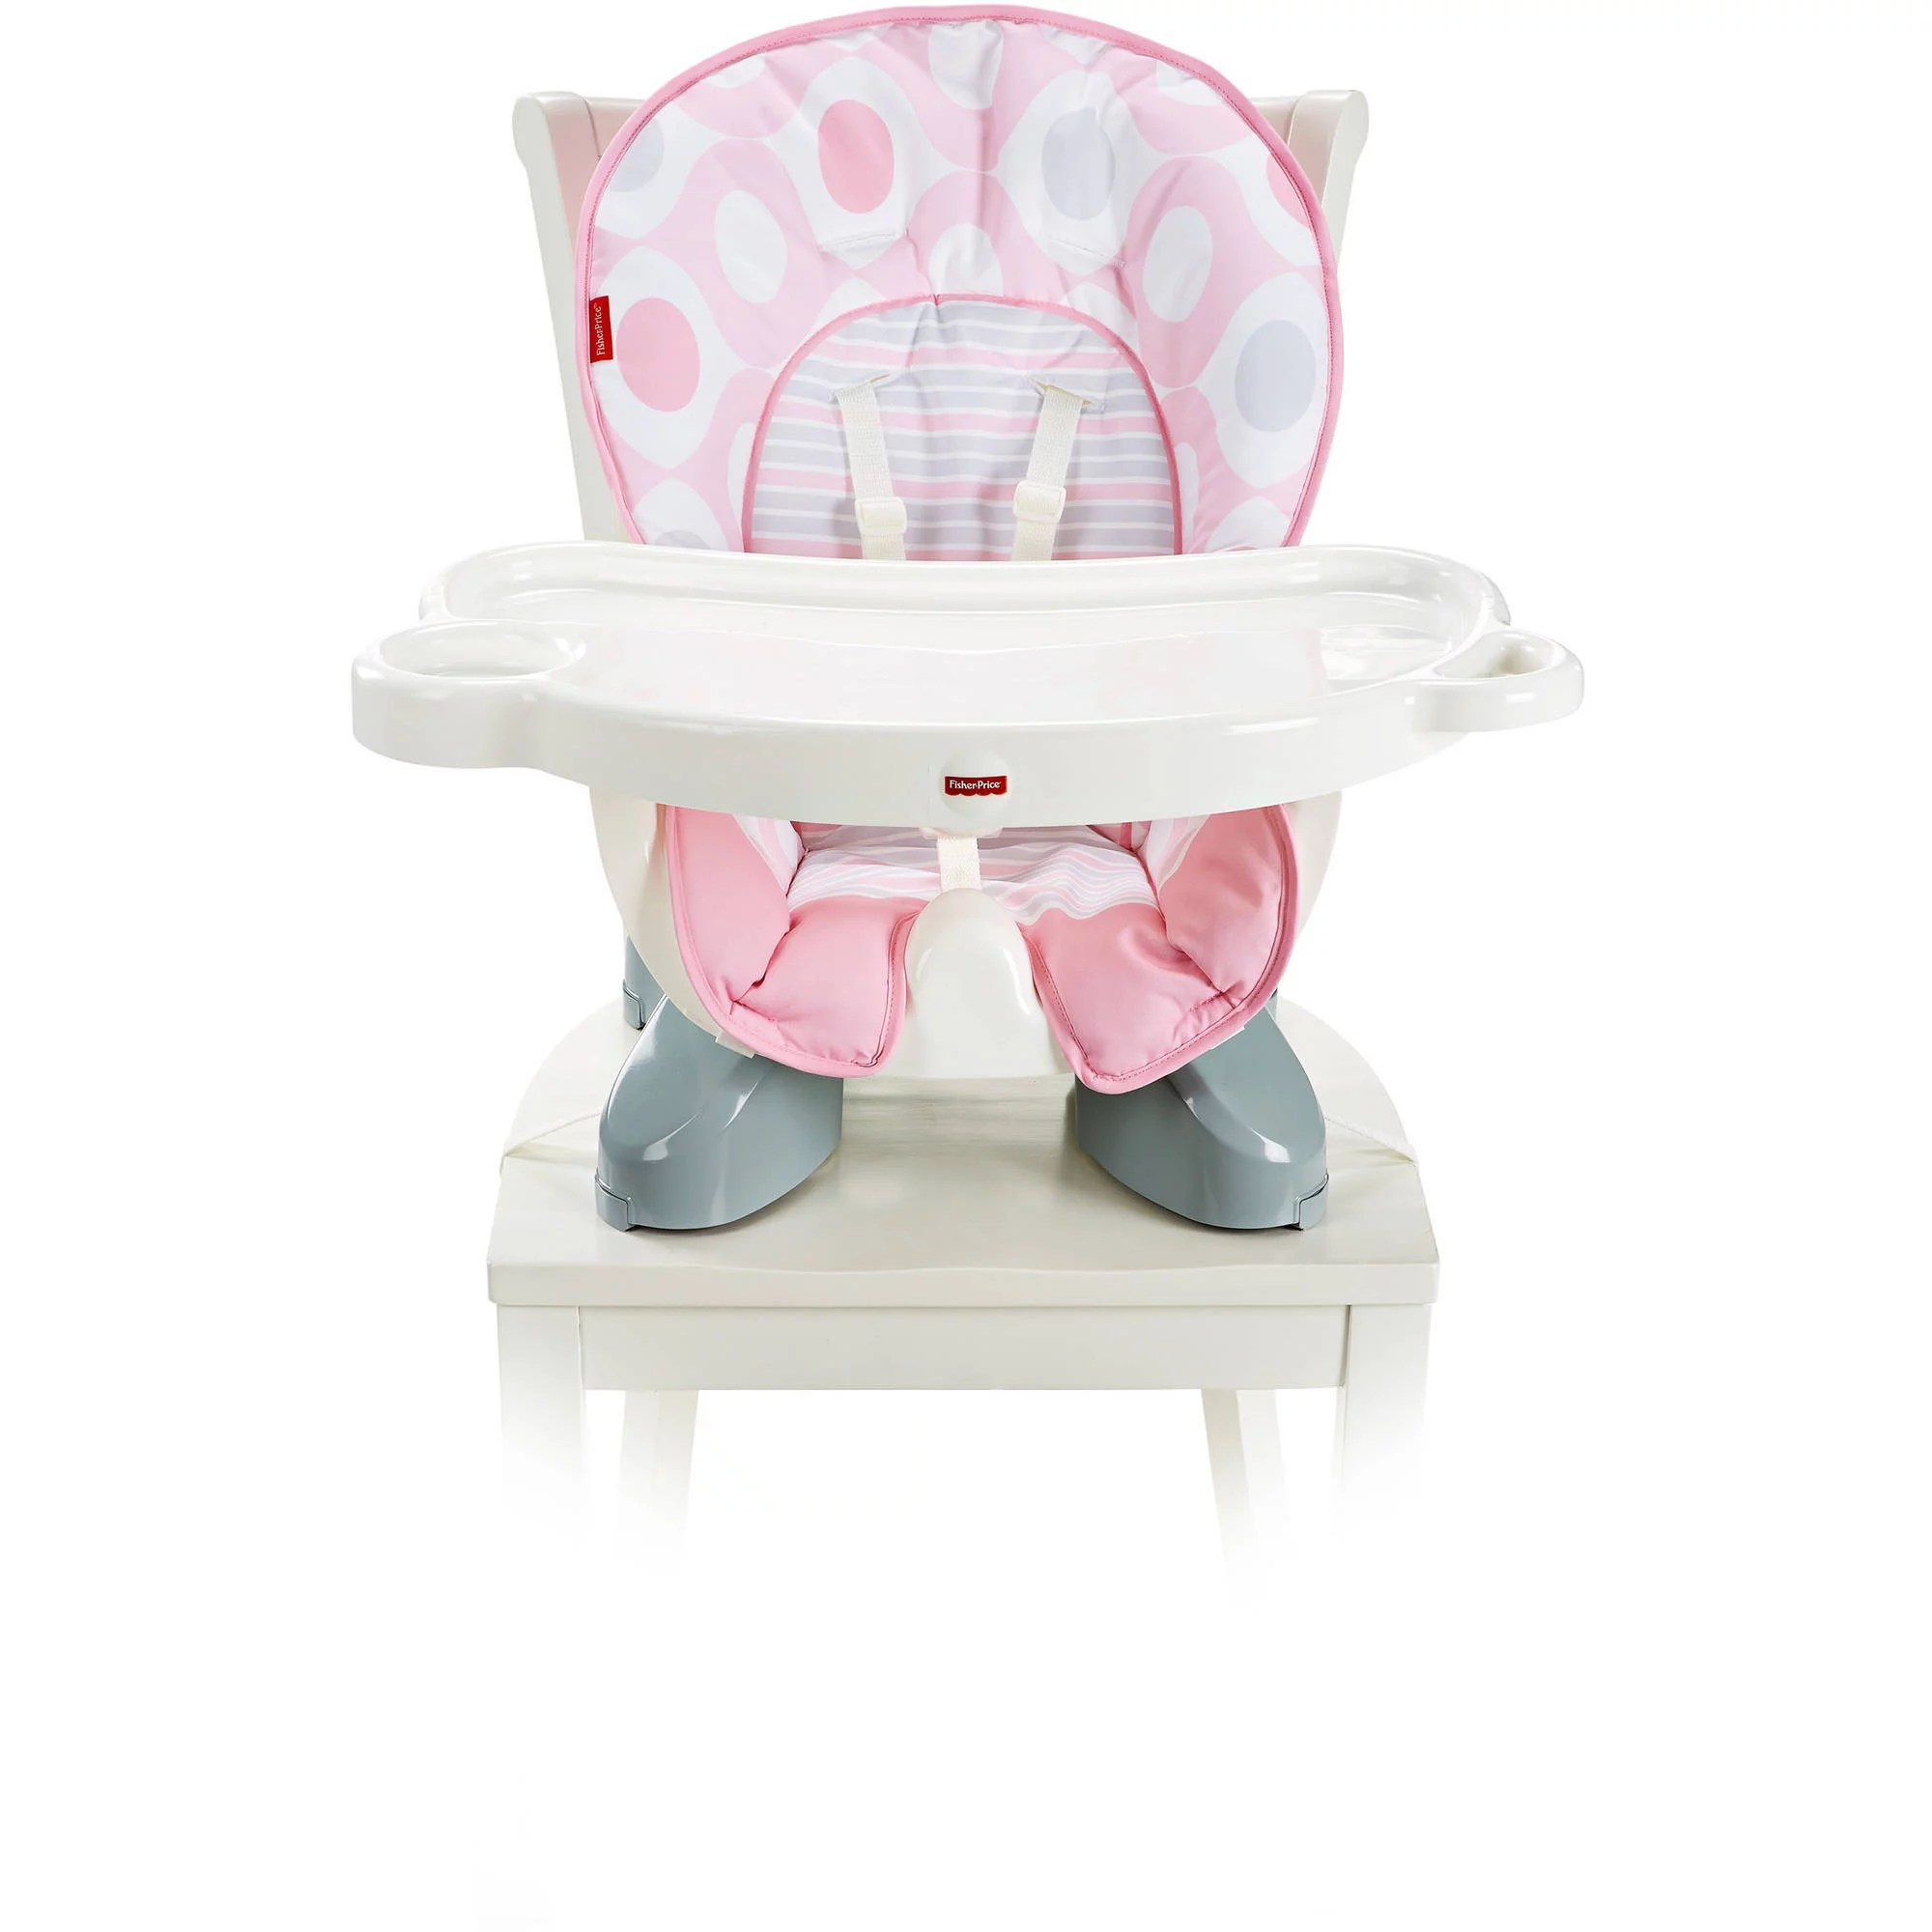 FisherPrice SpaceSaver High Chair  Pink Ellipse